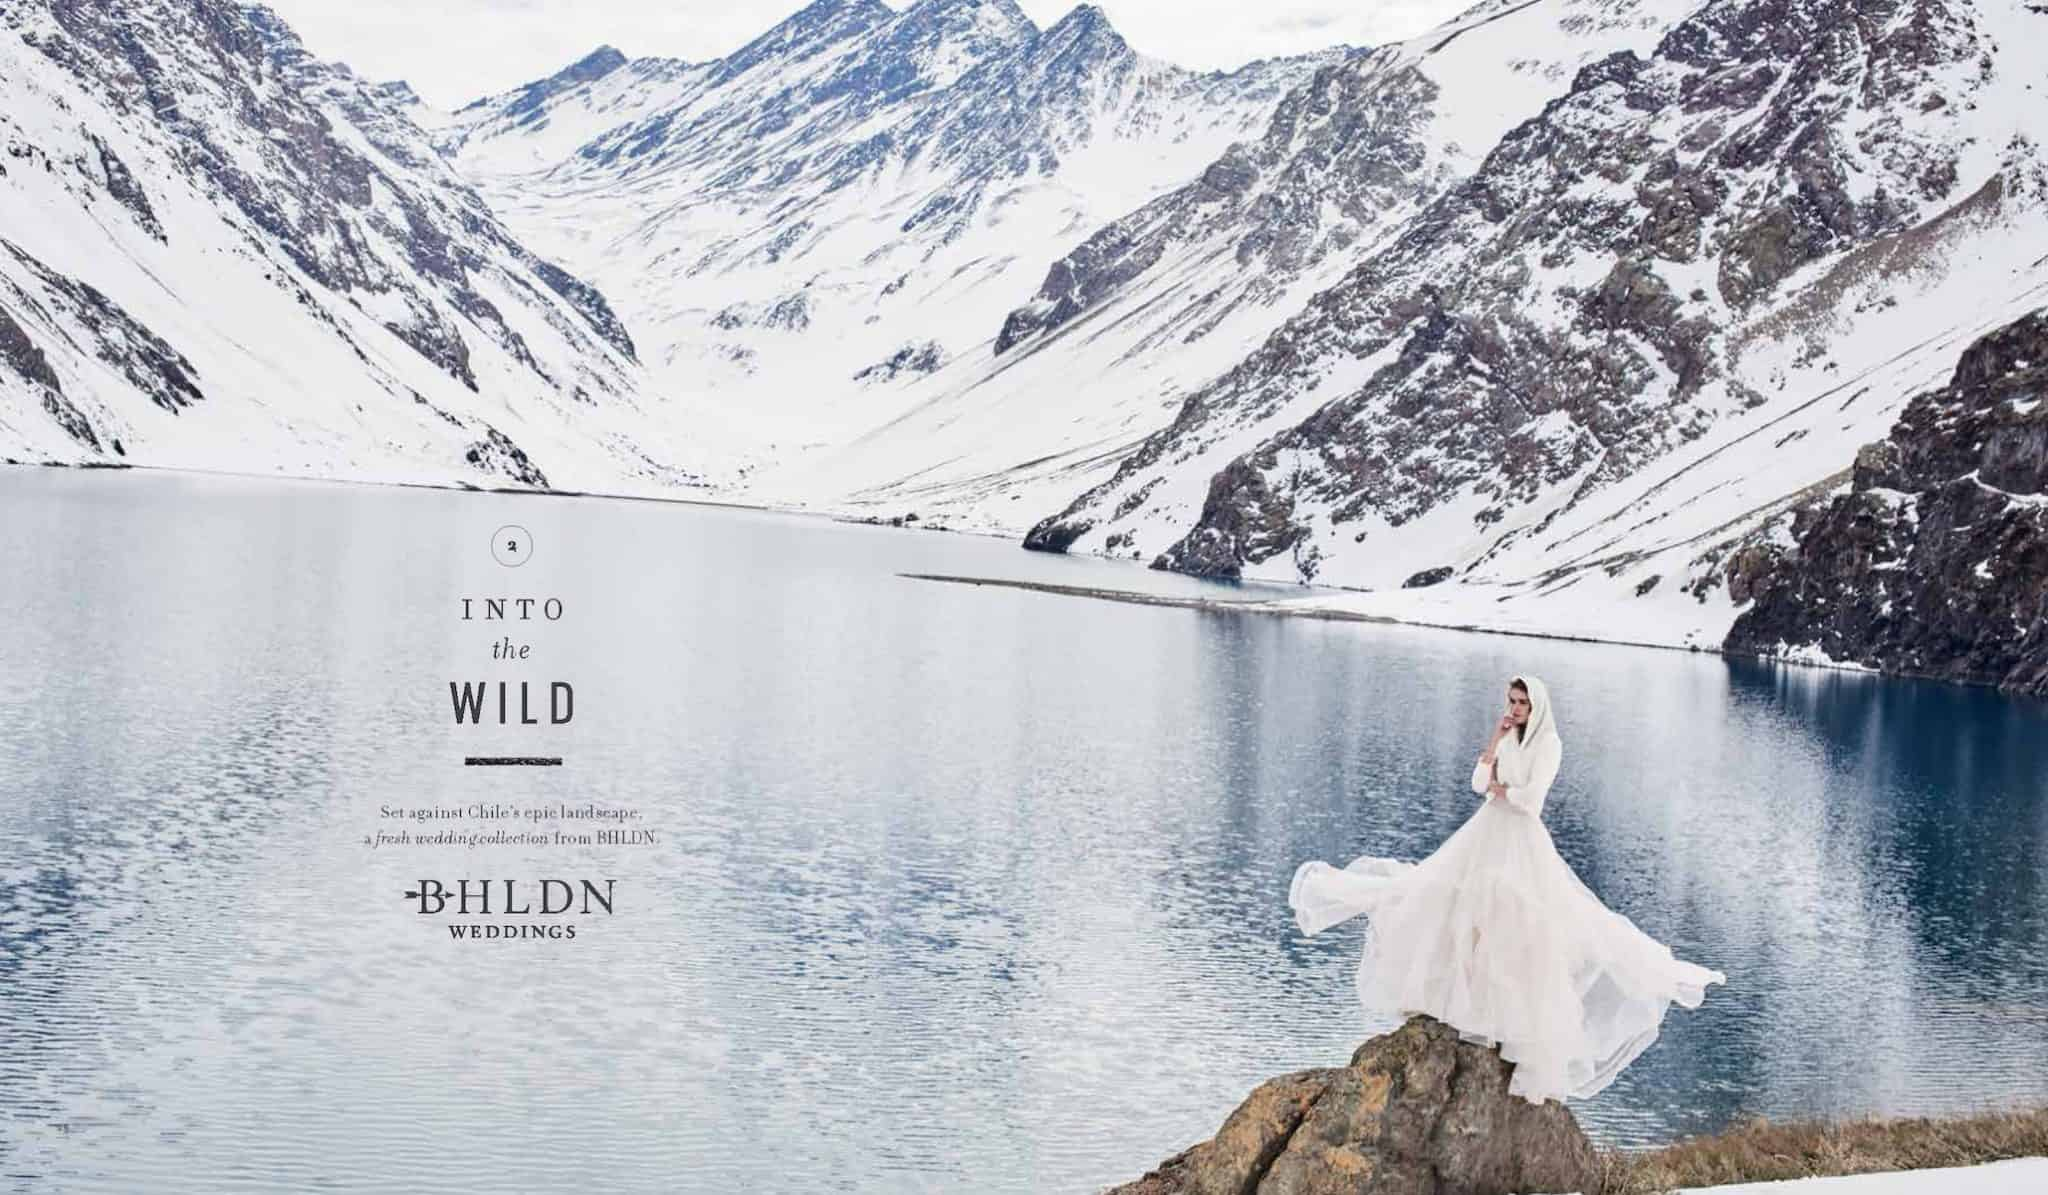 BHLDN – Alistair Taylor Young – Chile - Production by Baker & Co